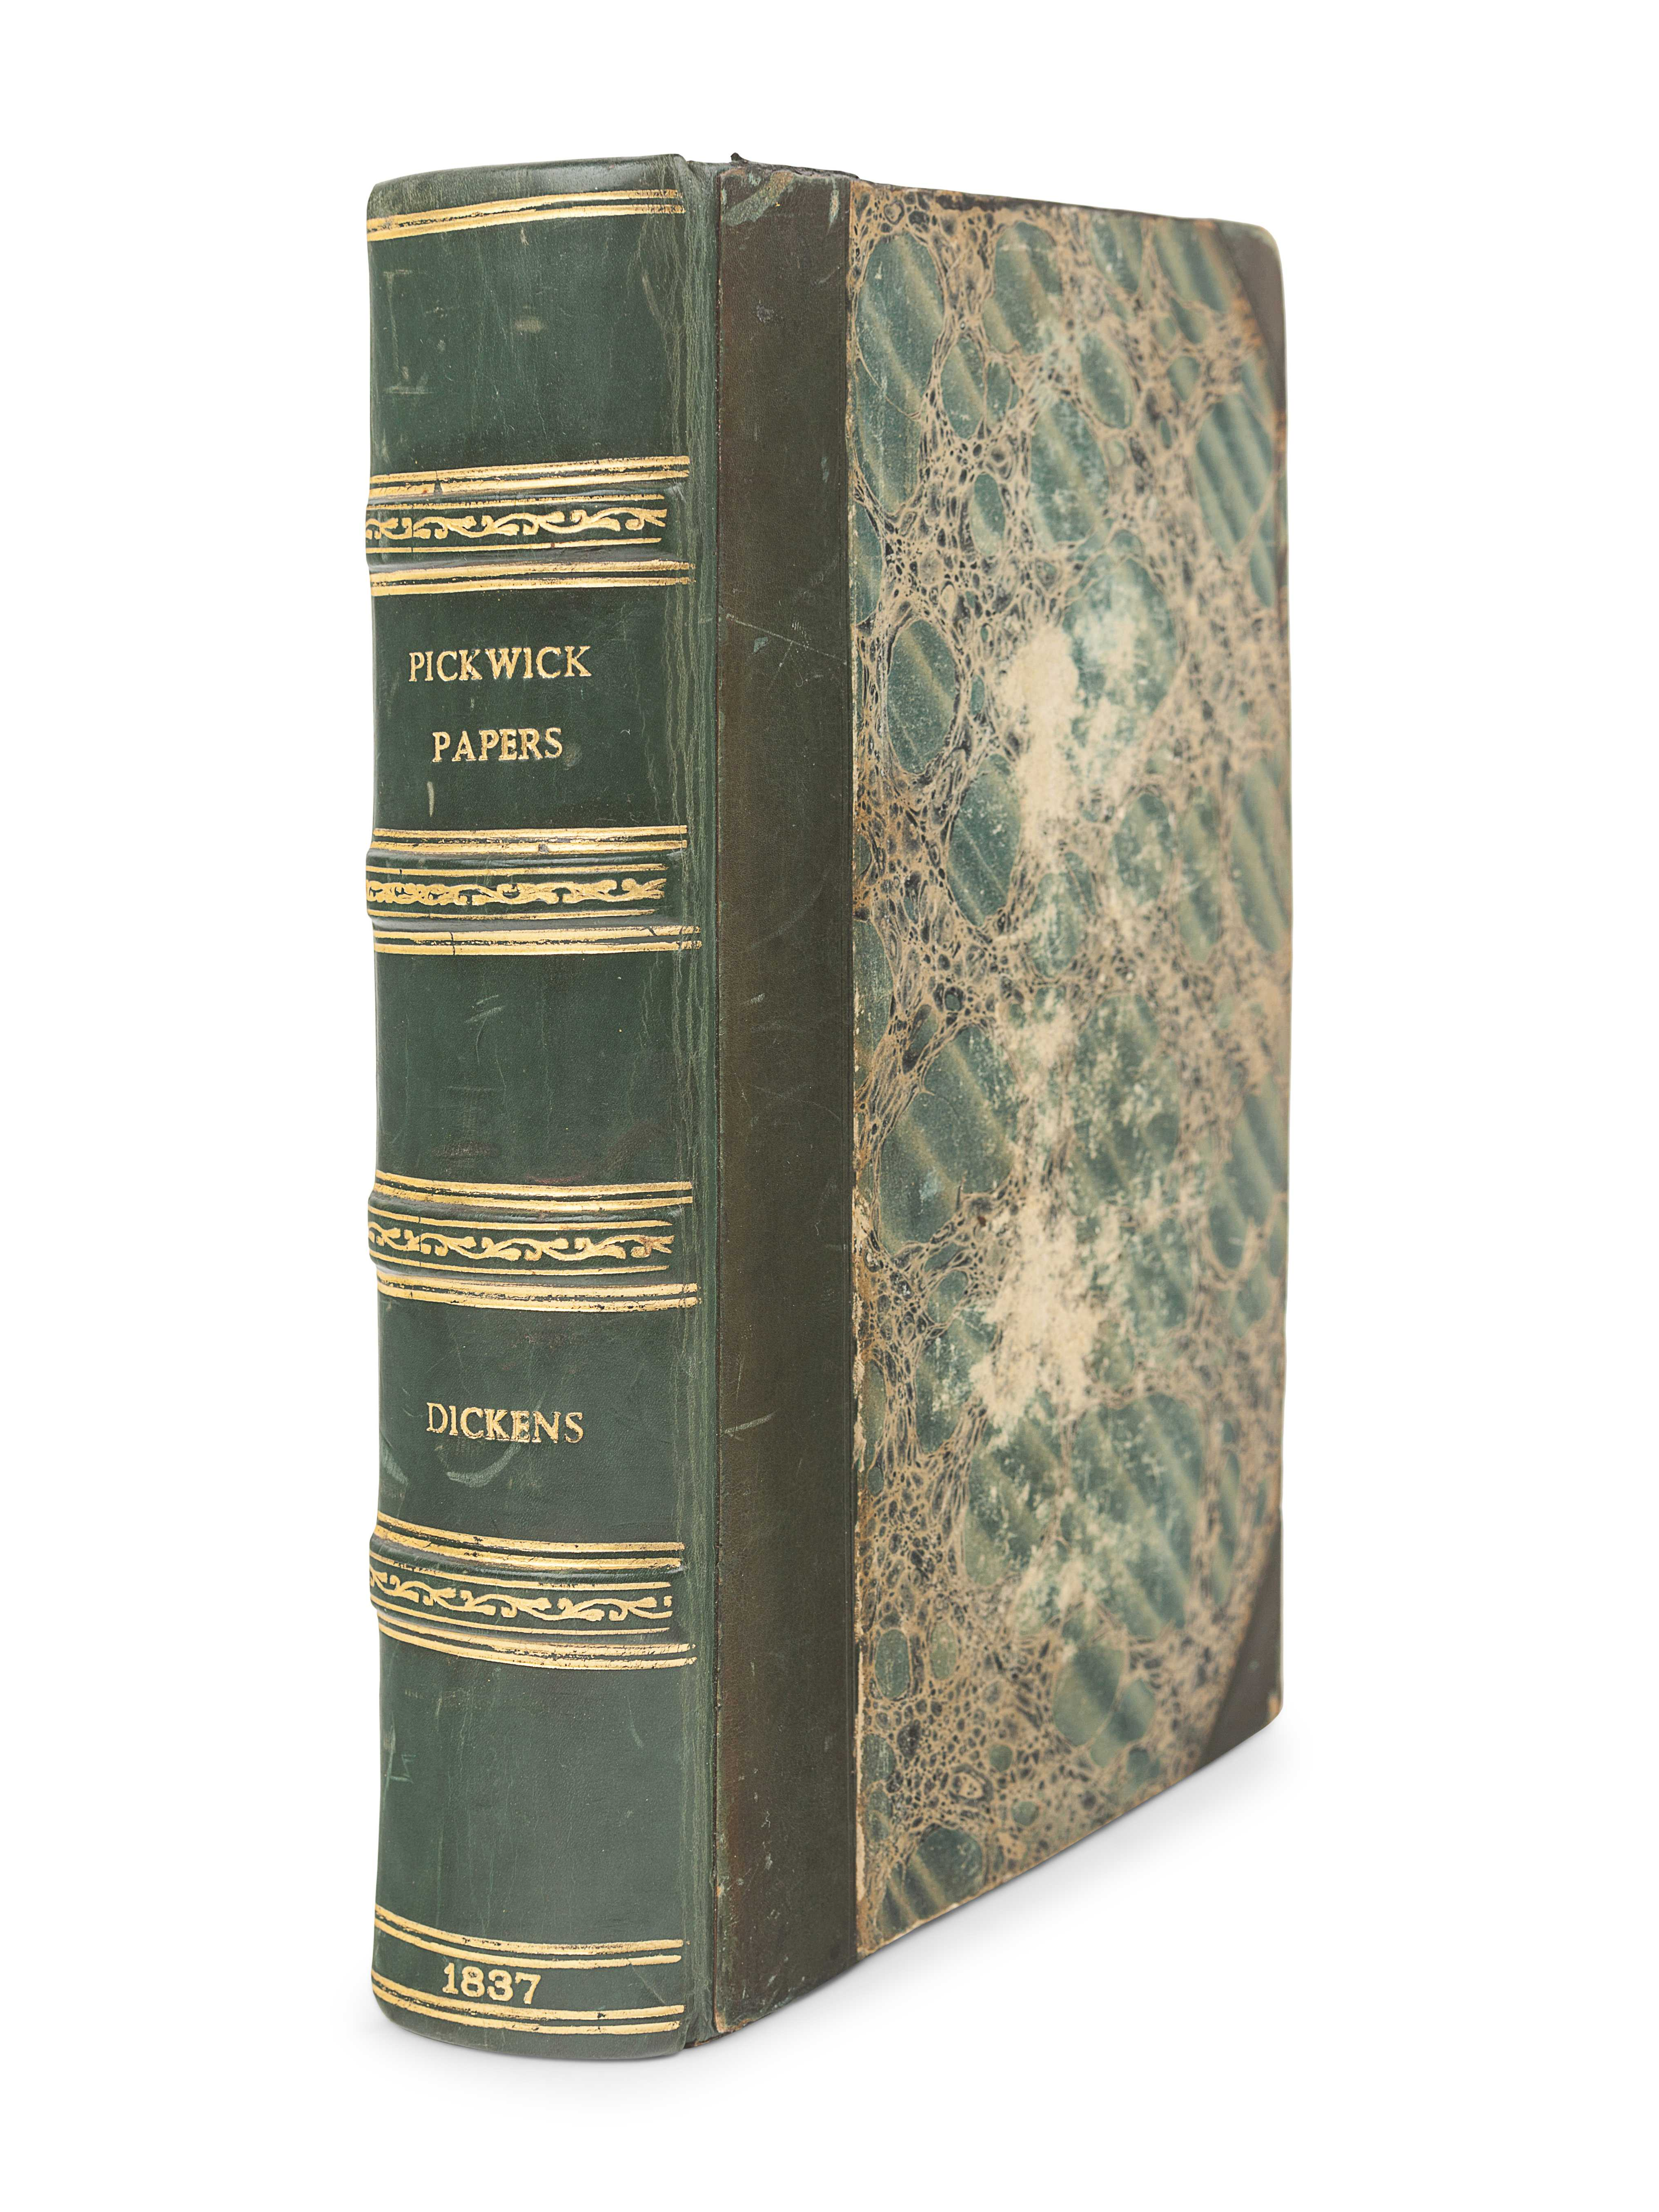 DICKENS, Charles (1812-1870). The Posthumous Papers of the Pickwick Club. London: Chapman & Hall, 18 - Image 2 of 2